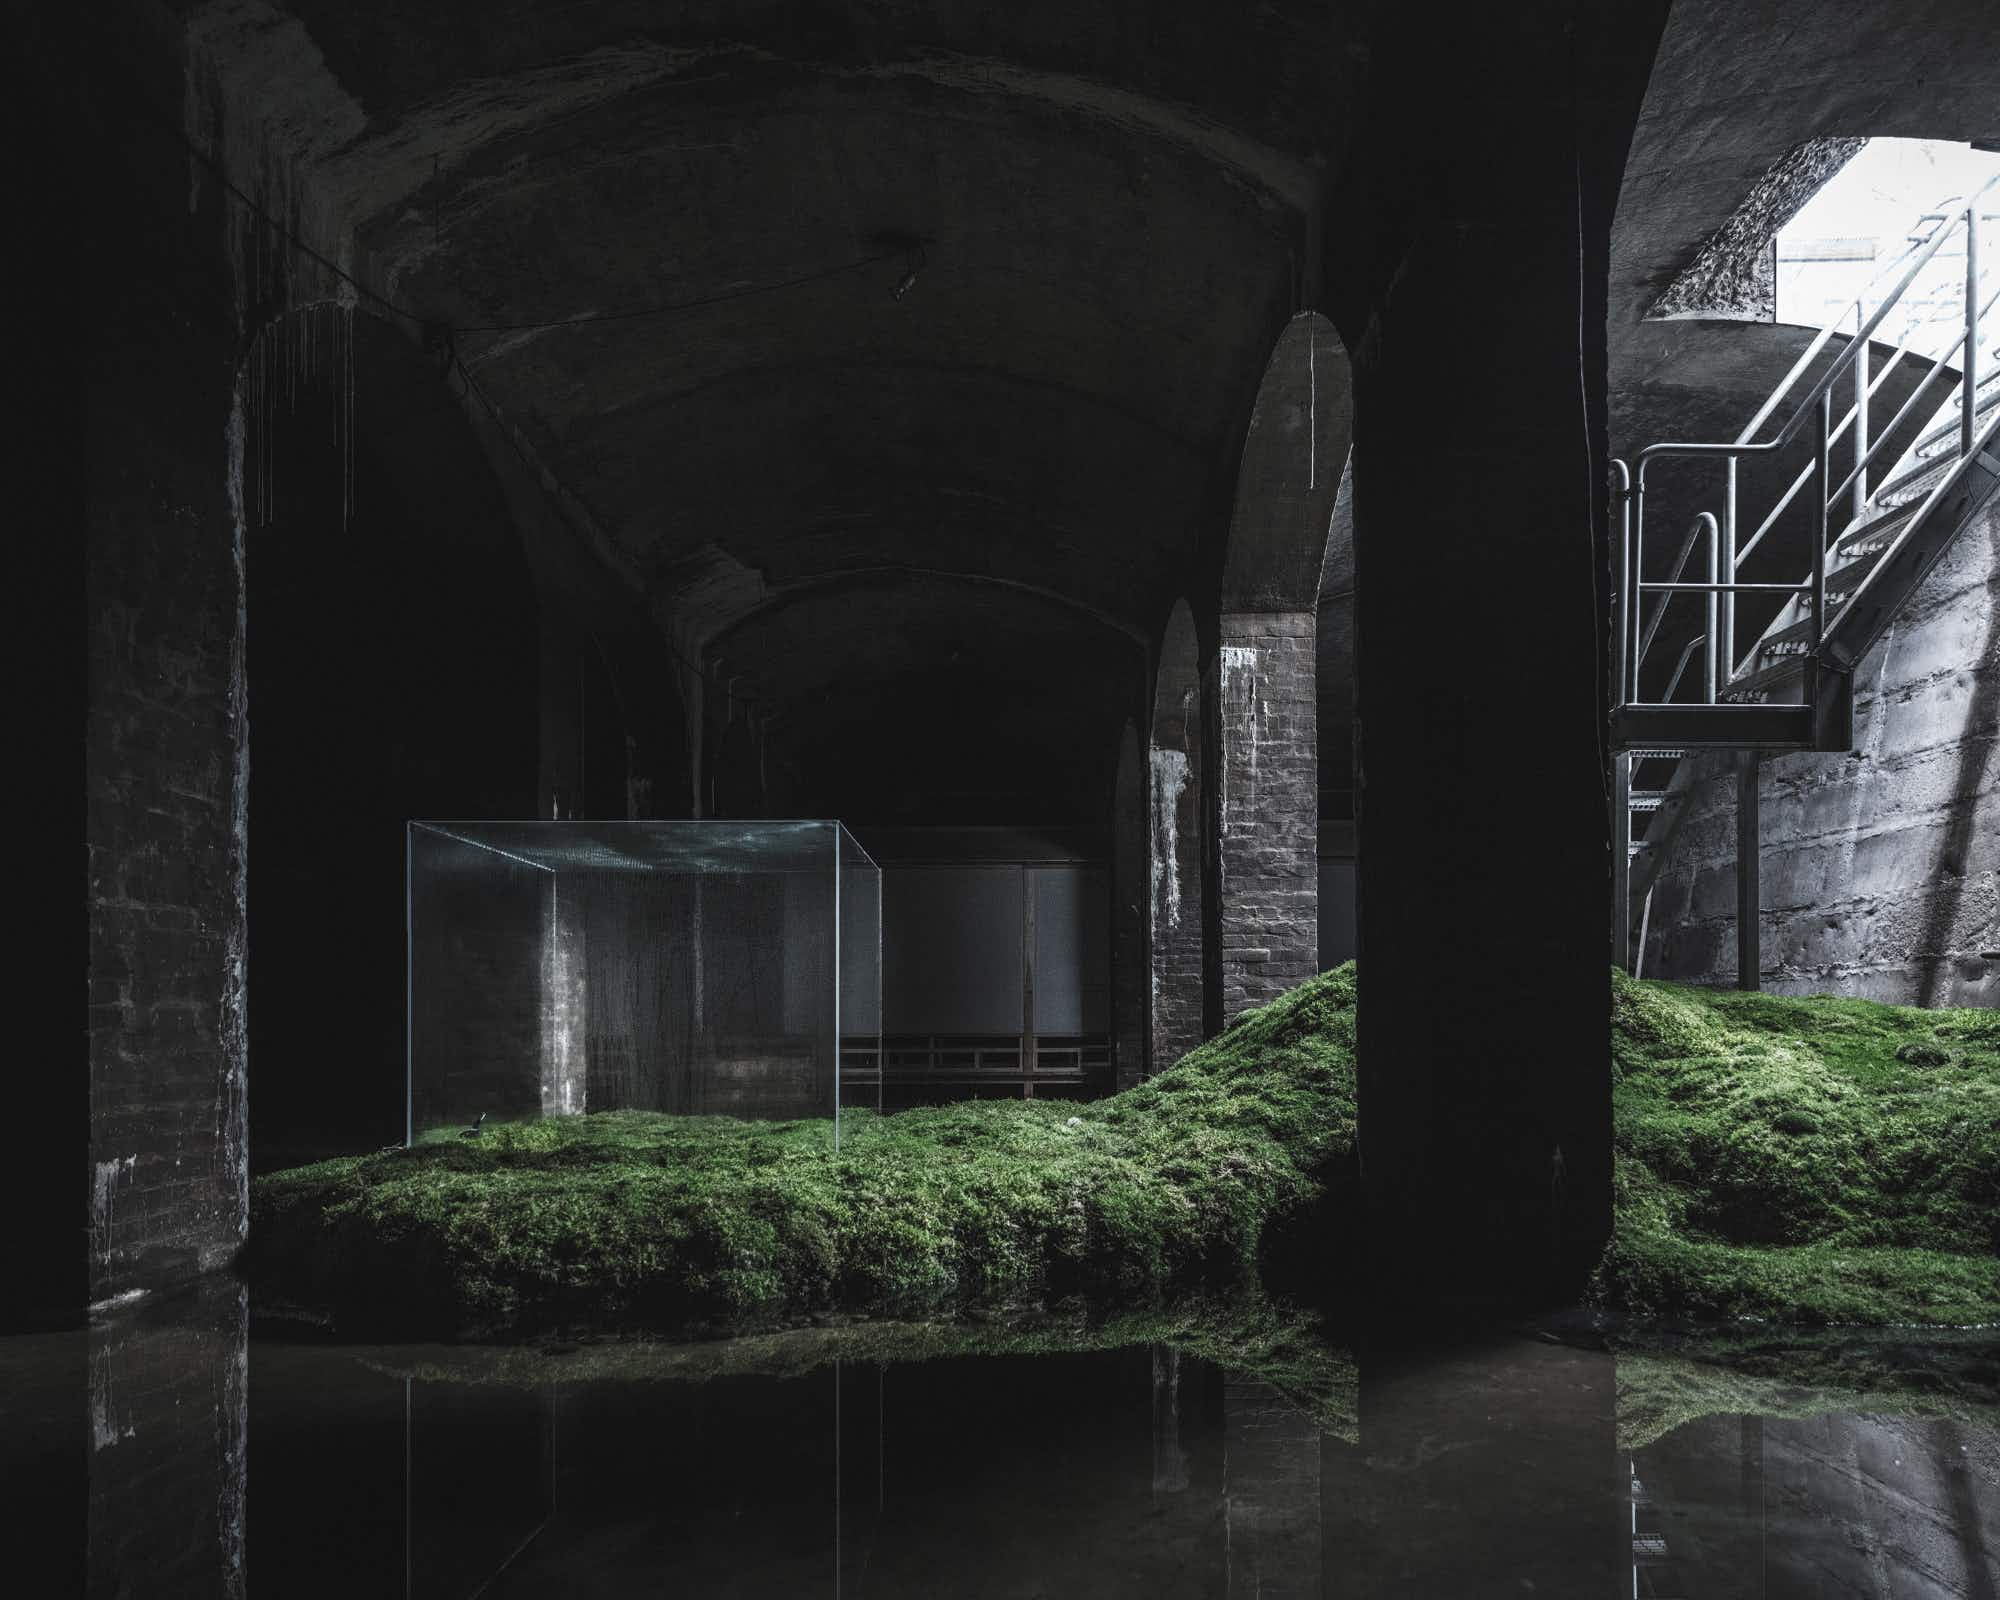 See a subterranean exhibition of water and light beneath Copenhagen